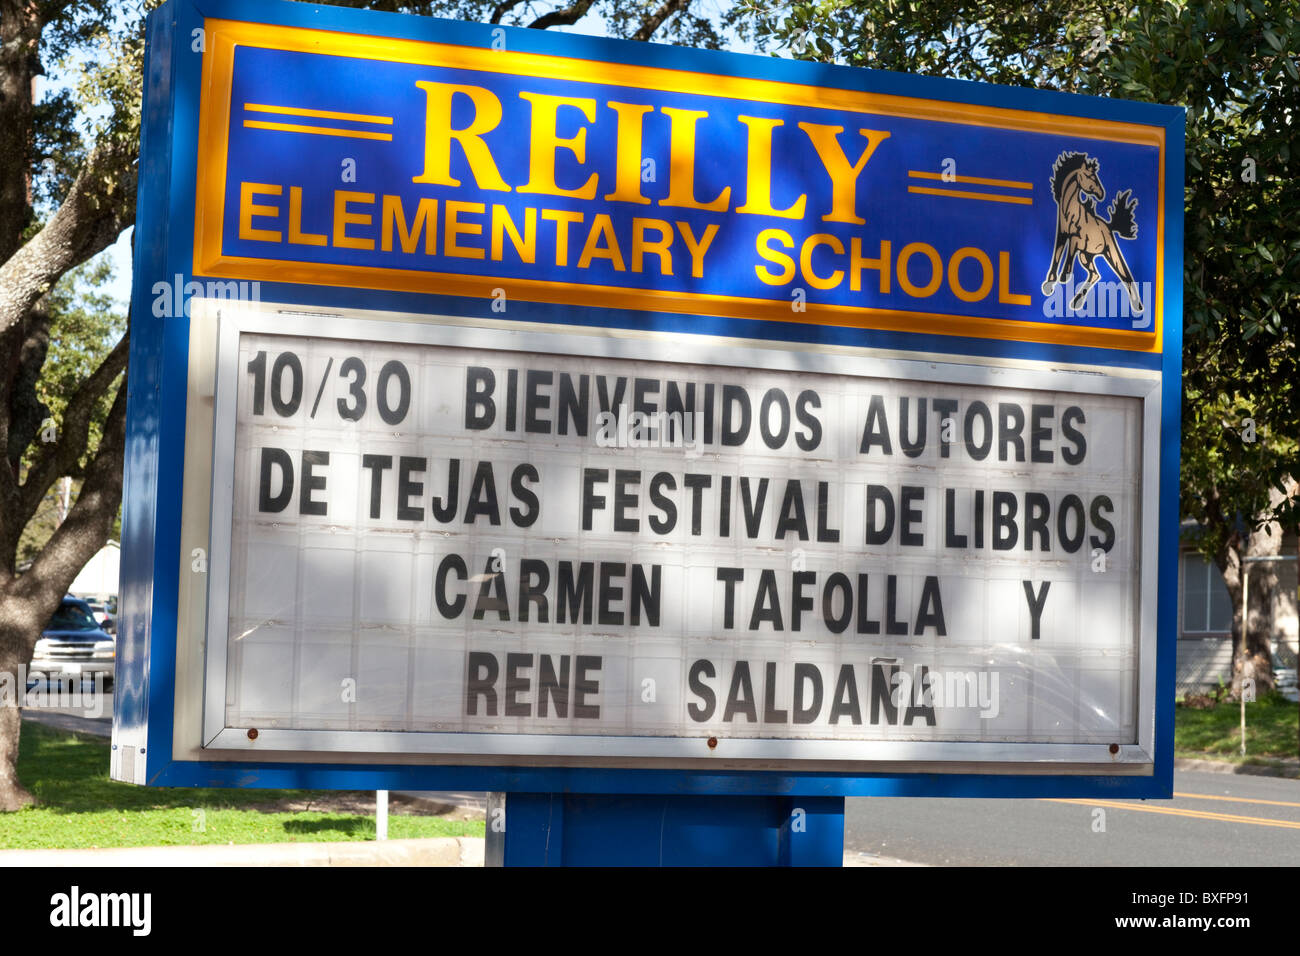 Sign outside Reilly Elementary in Austin welcomes children's book authors Carmen Tafolla and Rene Saldaña - Stock Image